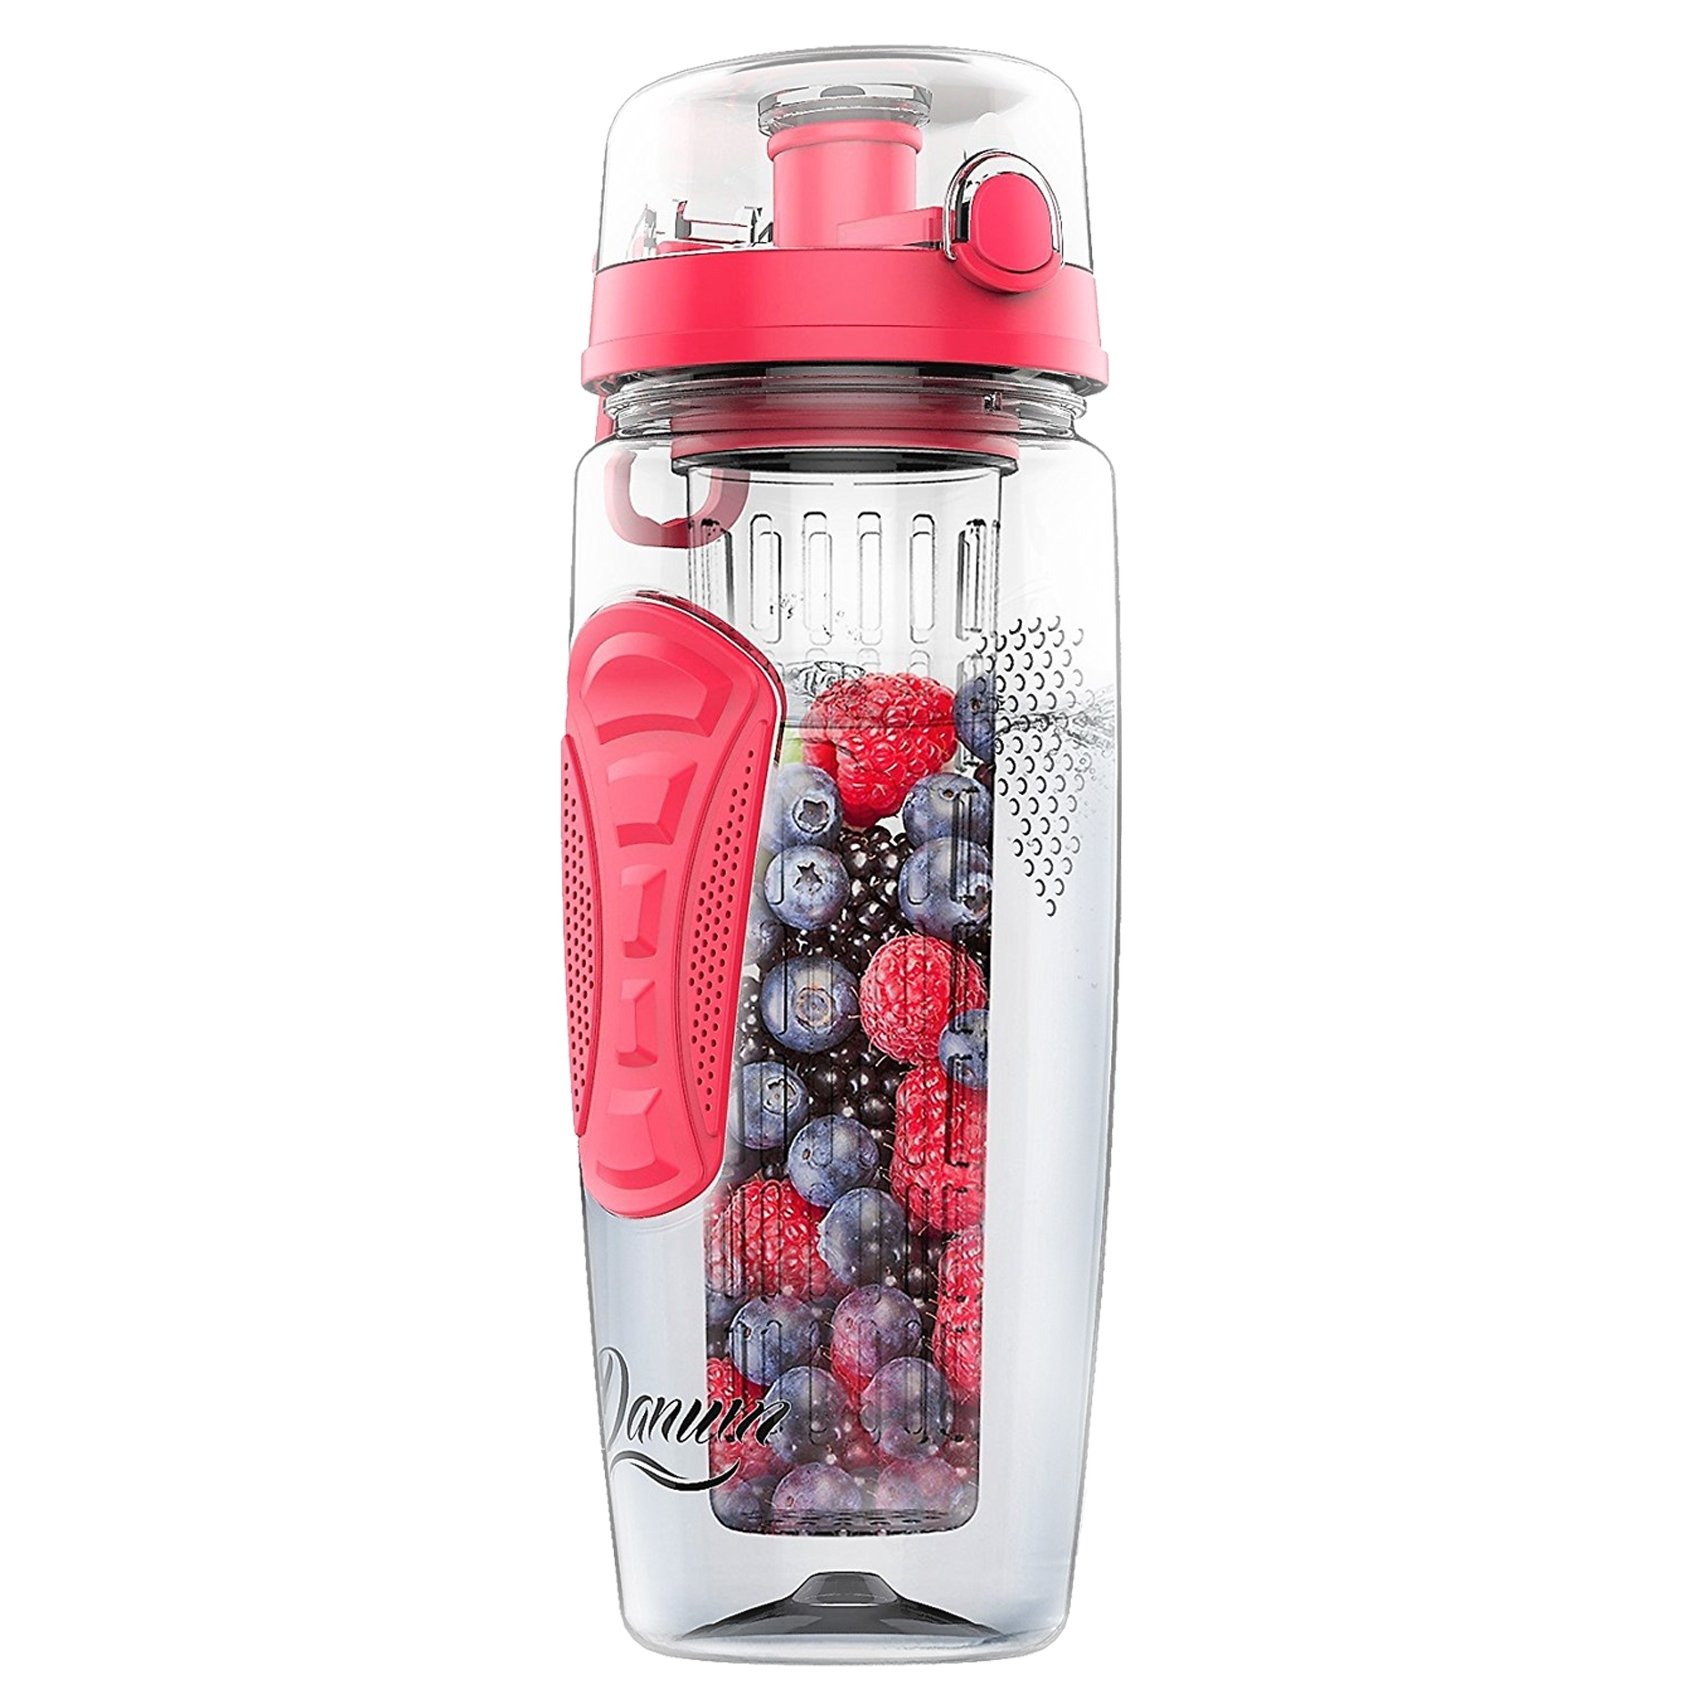 Danum Large 32oz Fruit Infuser Water Bottle by New Full Length Infusion Basket, Leak-proof, Flip-Top, Dual Hand Grips, made of BPA-Free Eastman Tritan with Multiple Color Options & Free Recipe Ebook